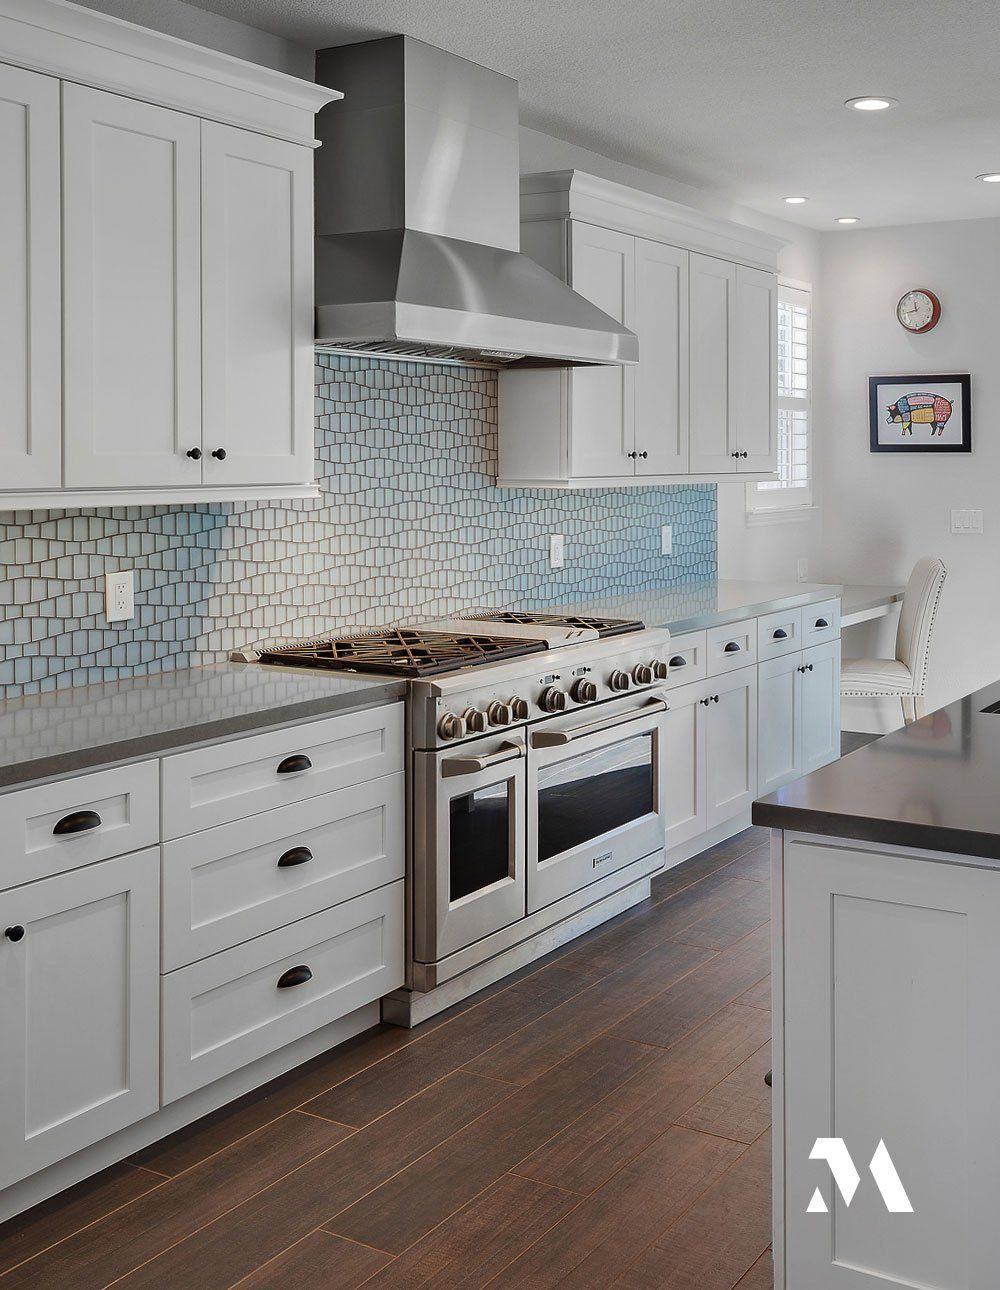 This Elegant And Serene White Kitchen With Monogram Appliances From Drf Builders Is A Dream Come True F In 2020 Professional Kitchen Appliances Kitchen Remodel Kitchen